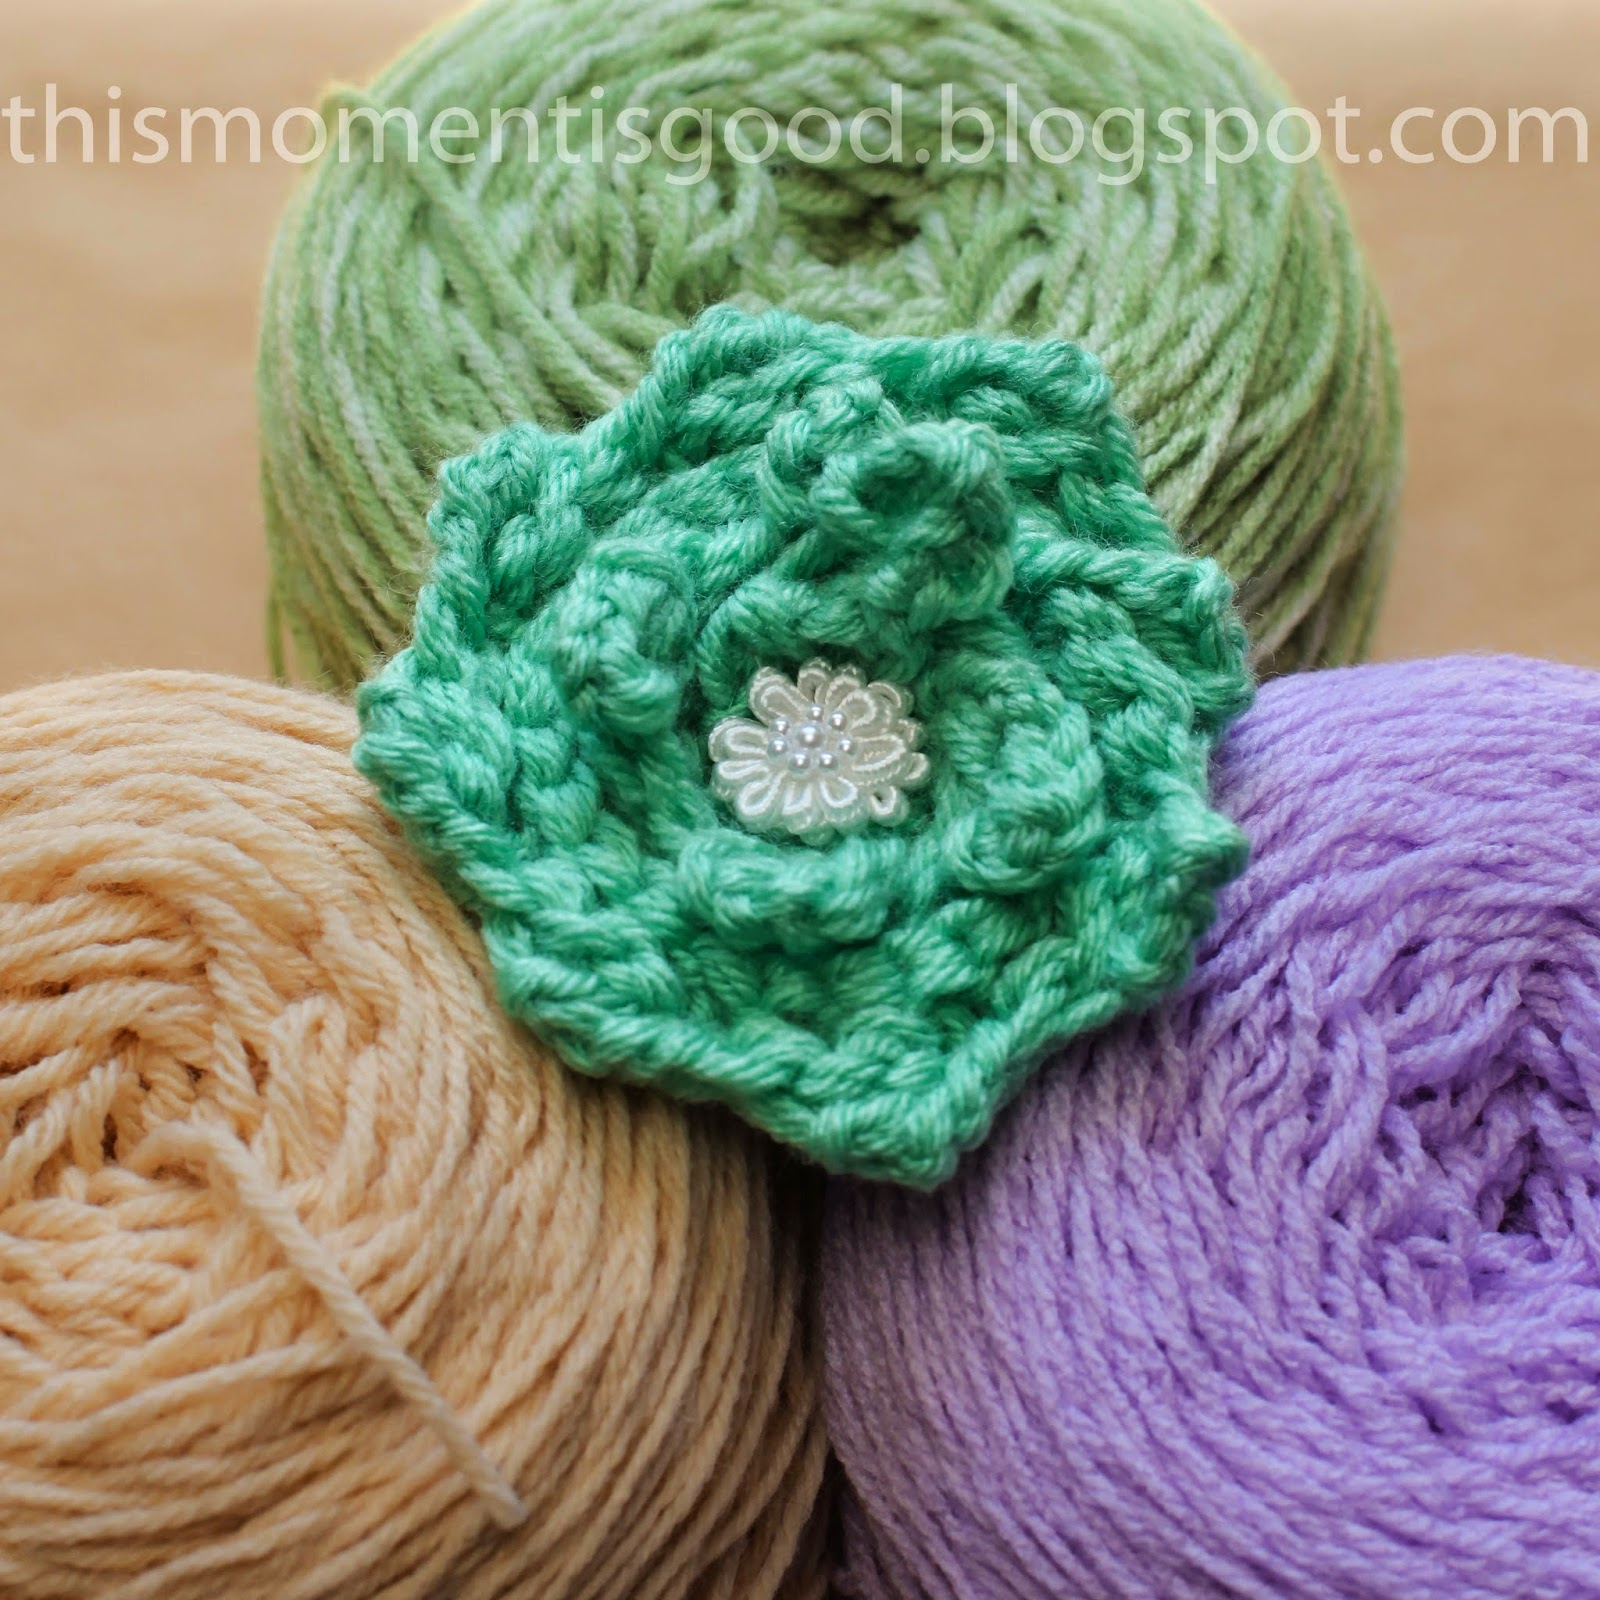 Loom Knitting Patterns : Loom Knitting by This Moment is Good!: LOOM KNIT ROSE PATTERN